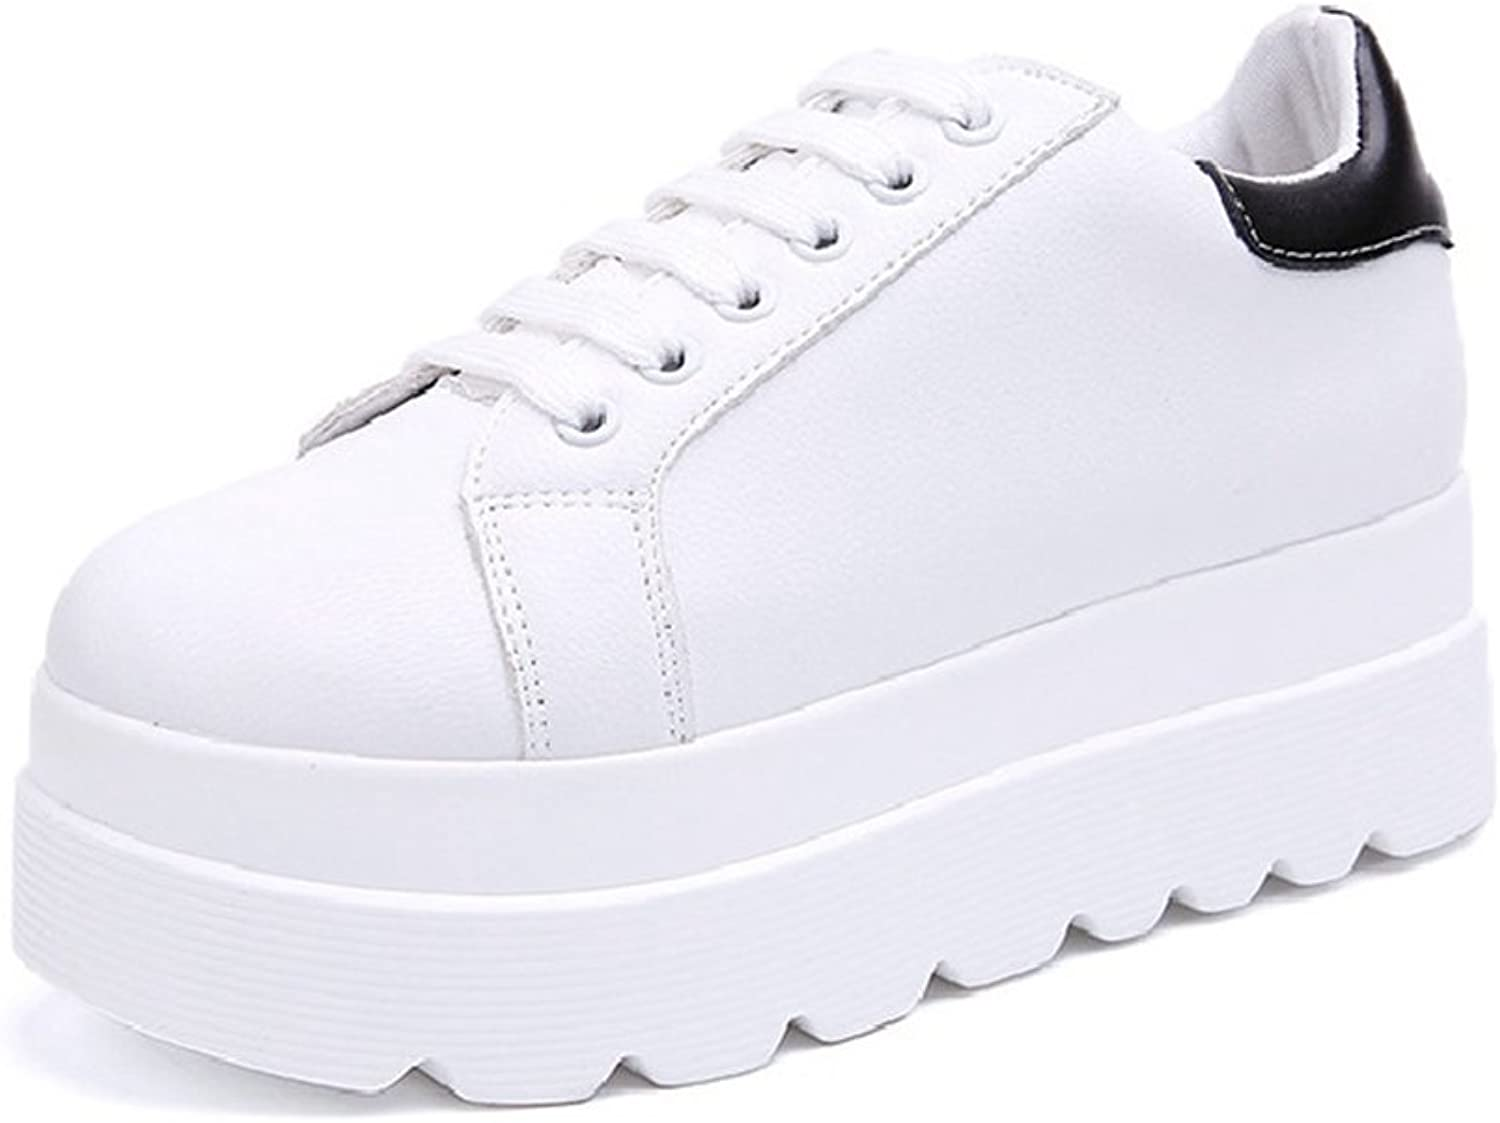 CYBLING Outdoor Casual Low Top White Platform Sneakers for Women Fashion Lace Up Walking shoes